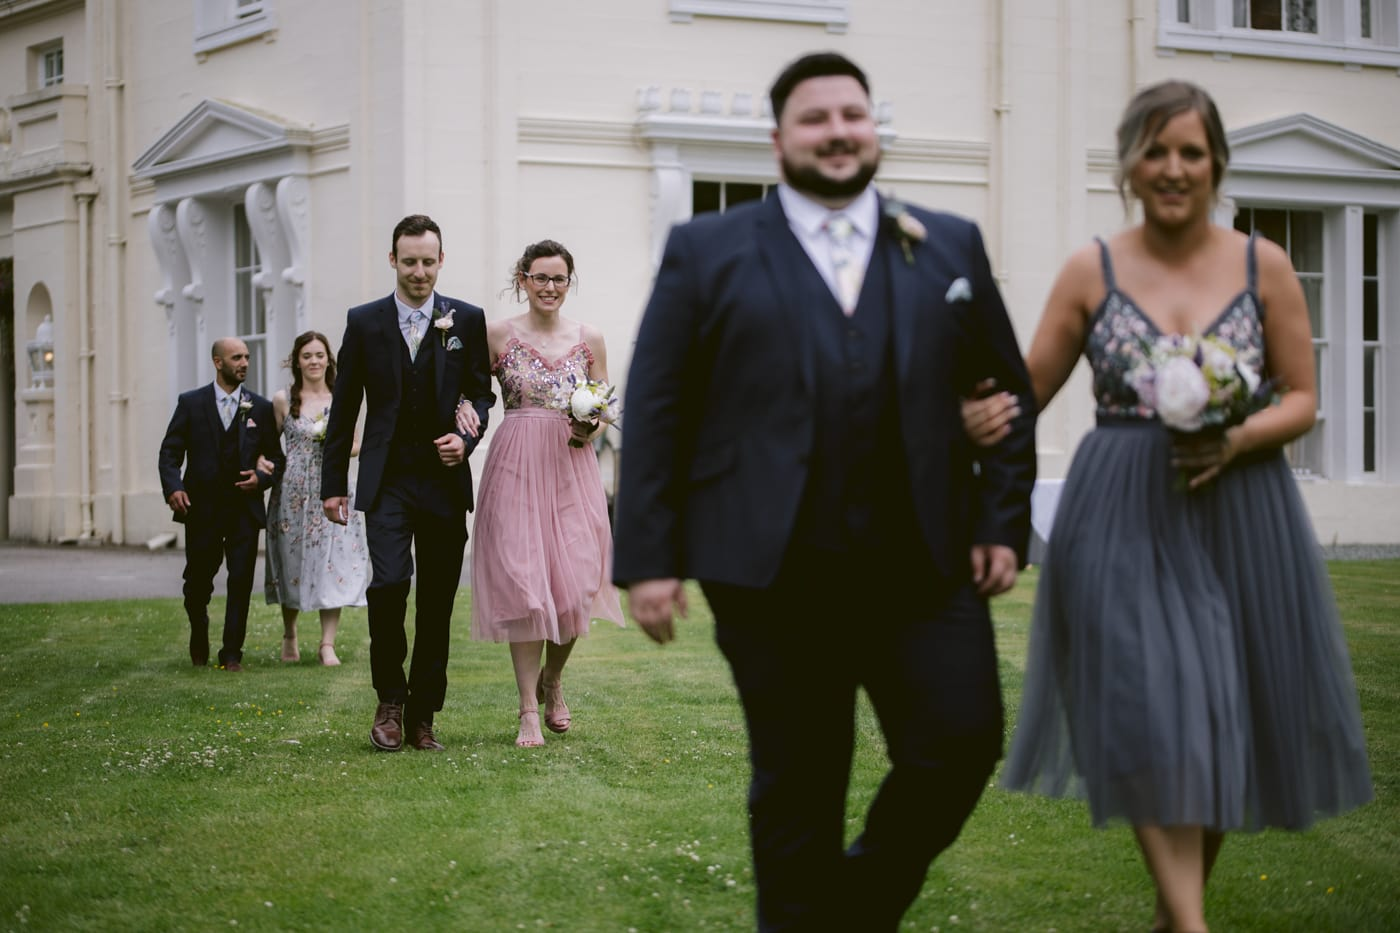 Guests walking Down to be Seated Outside Portrait Shoot at Storrs Hall Wedding